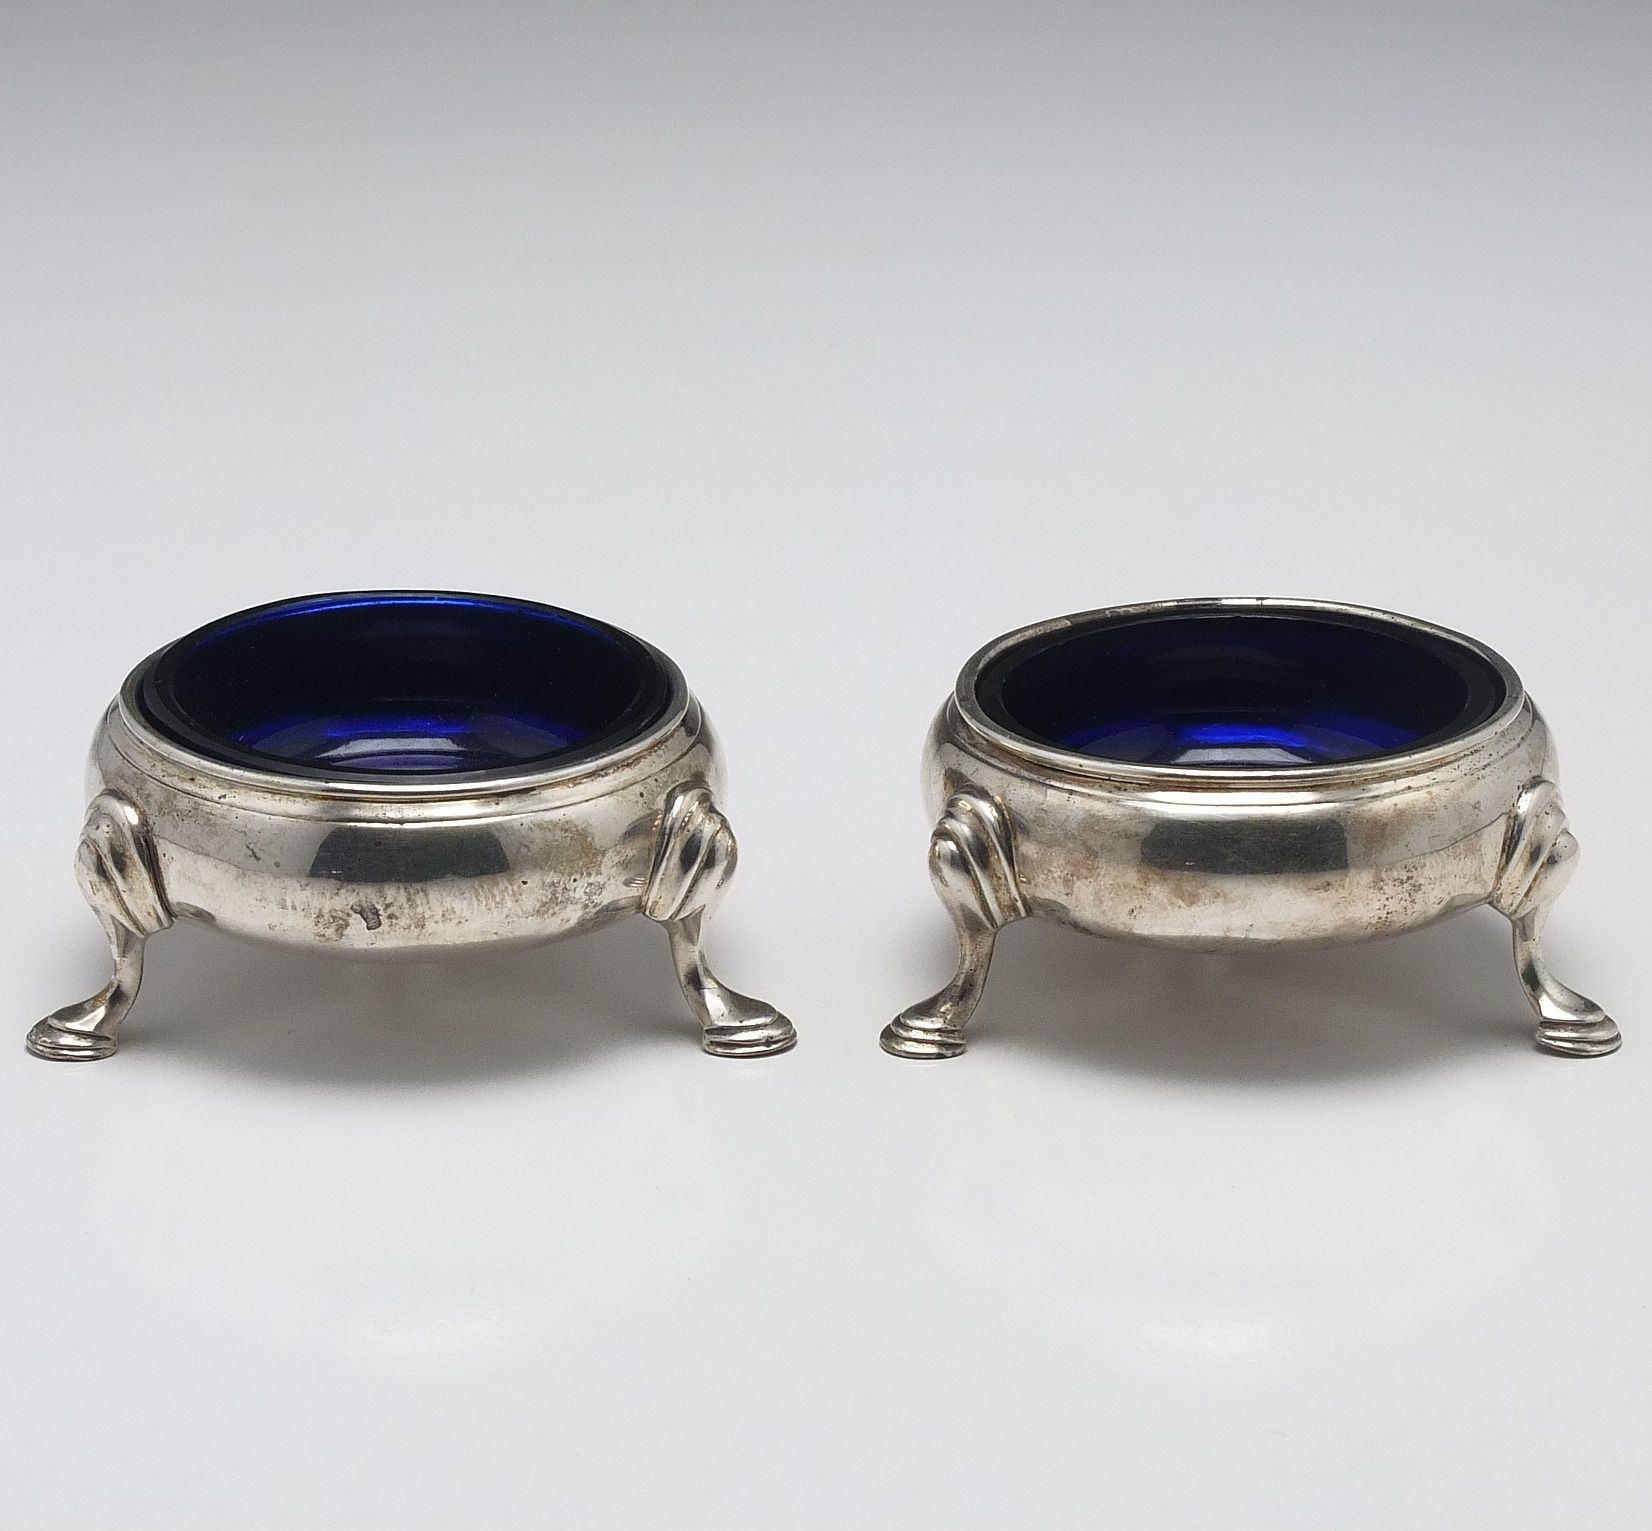 'Pair of George III Sterling Silver Open Salts With Bristol Blue Glass Inserts John Muns London 1759'